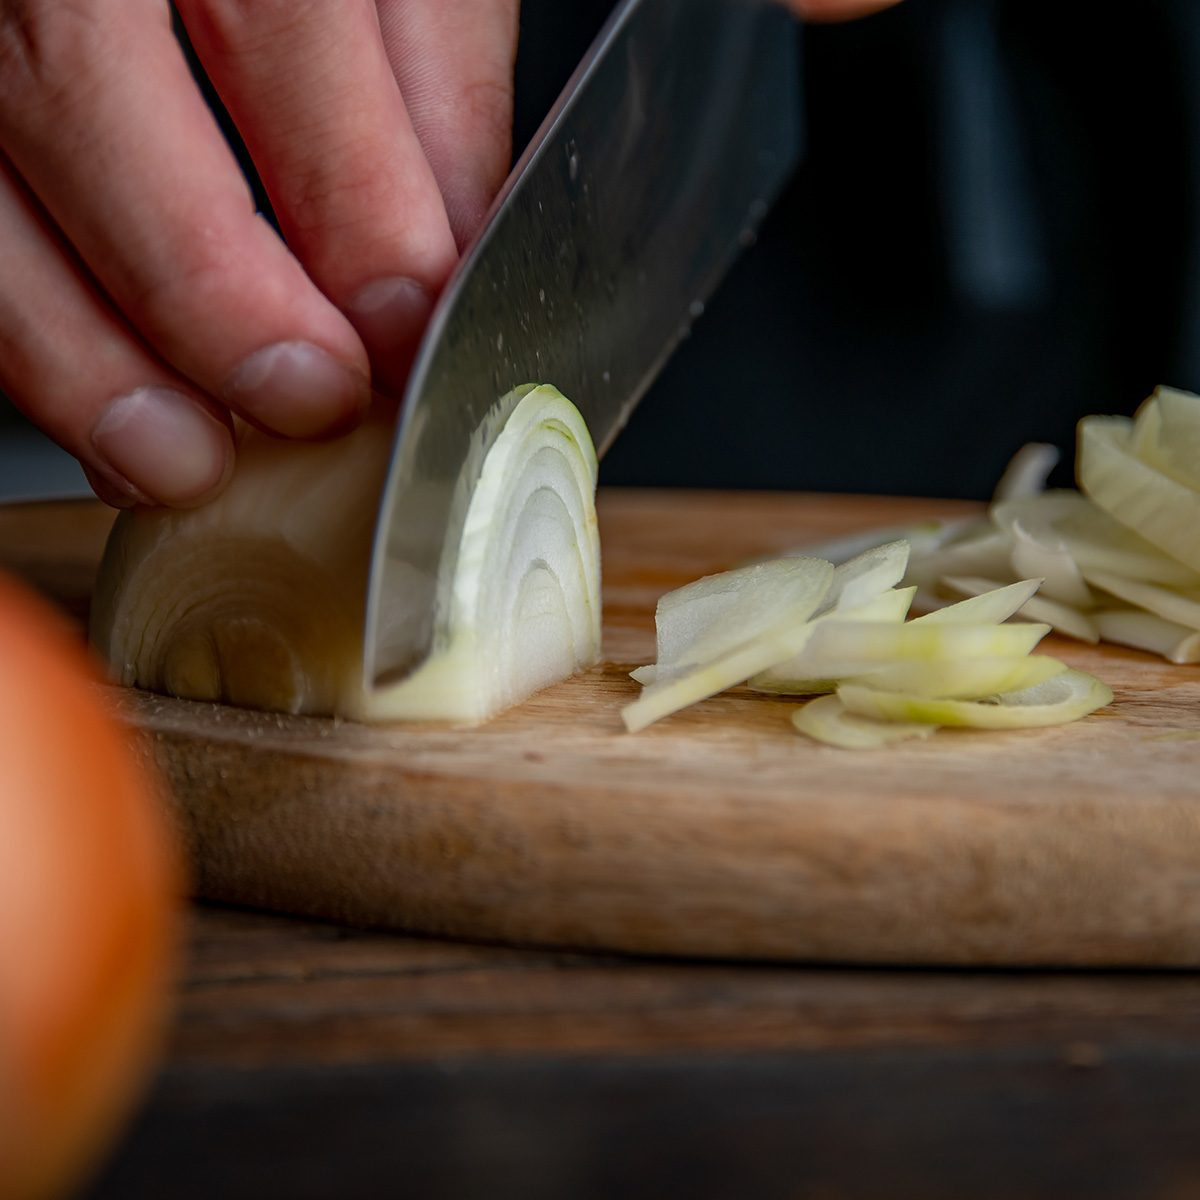 Slicing onion on cutting board in kitchen. Cooking image.